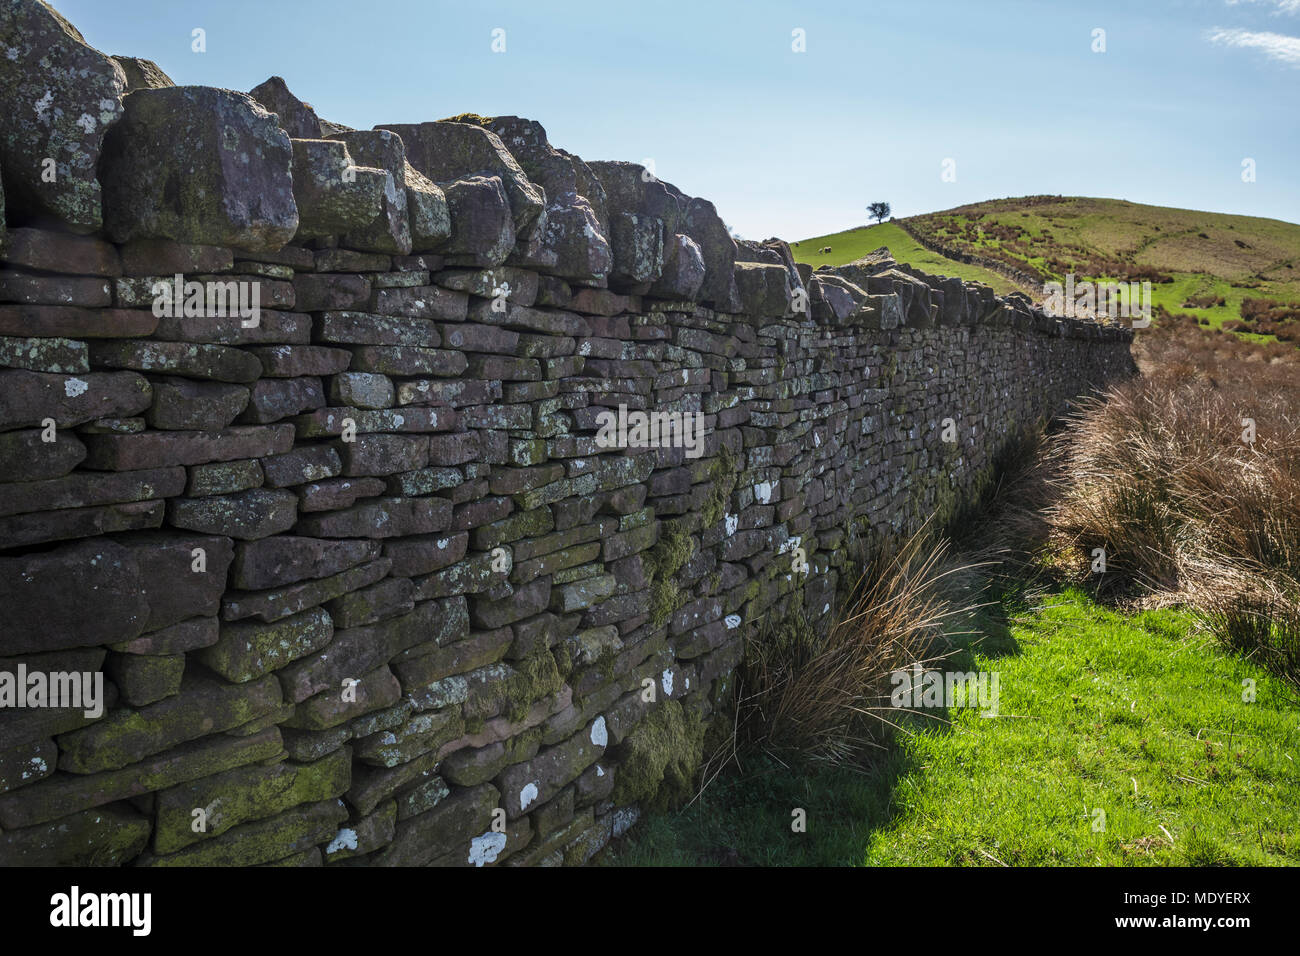 Dry Stone Wall above the Talybont Reservoir in the Central Brecon Beacons - Stock Image